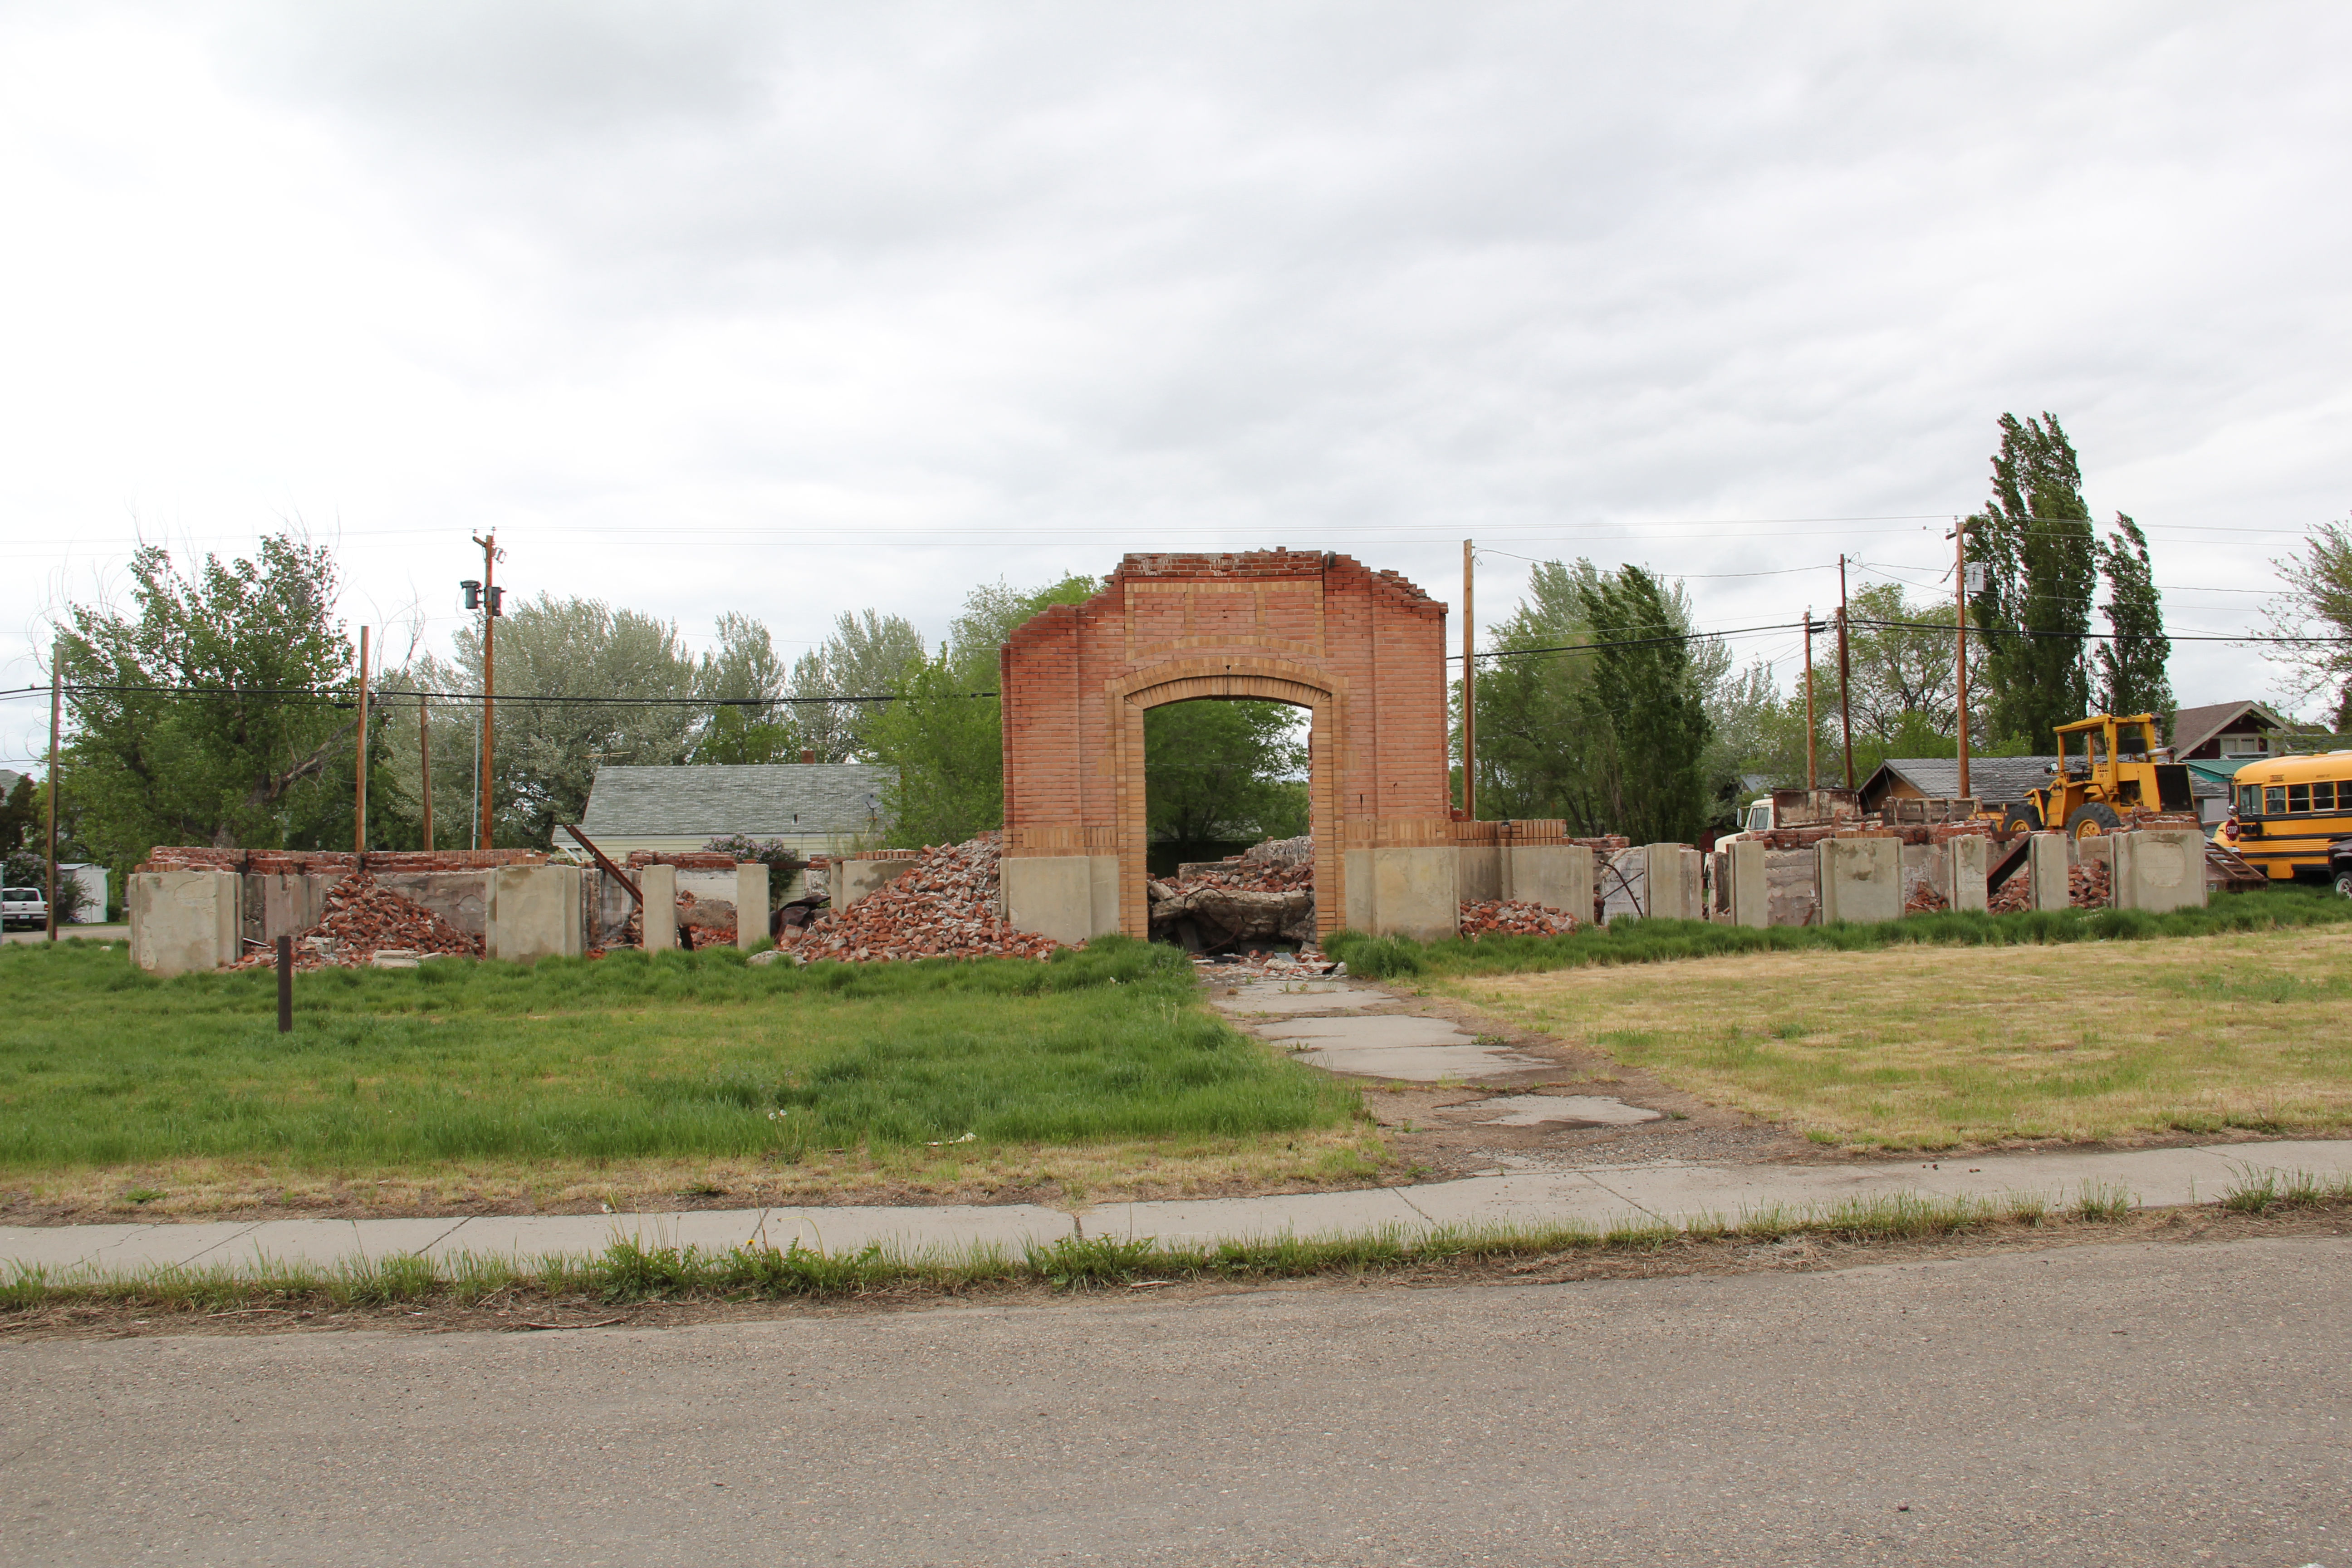 Montana rosebud county forsyth - Rosebud Montana Is A Small Northern Pacific Era Railroad Town In Rosebud County A Recent Commentator On The Blog Asked For More About This Town